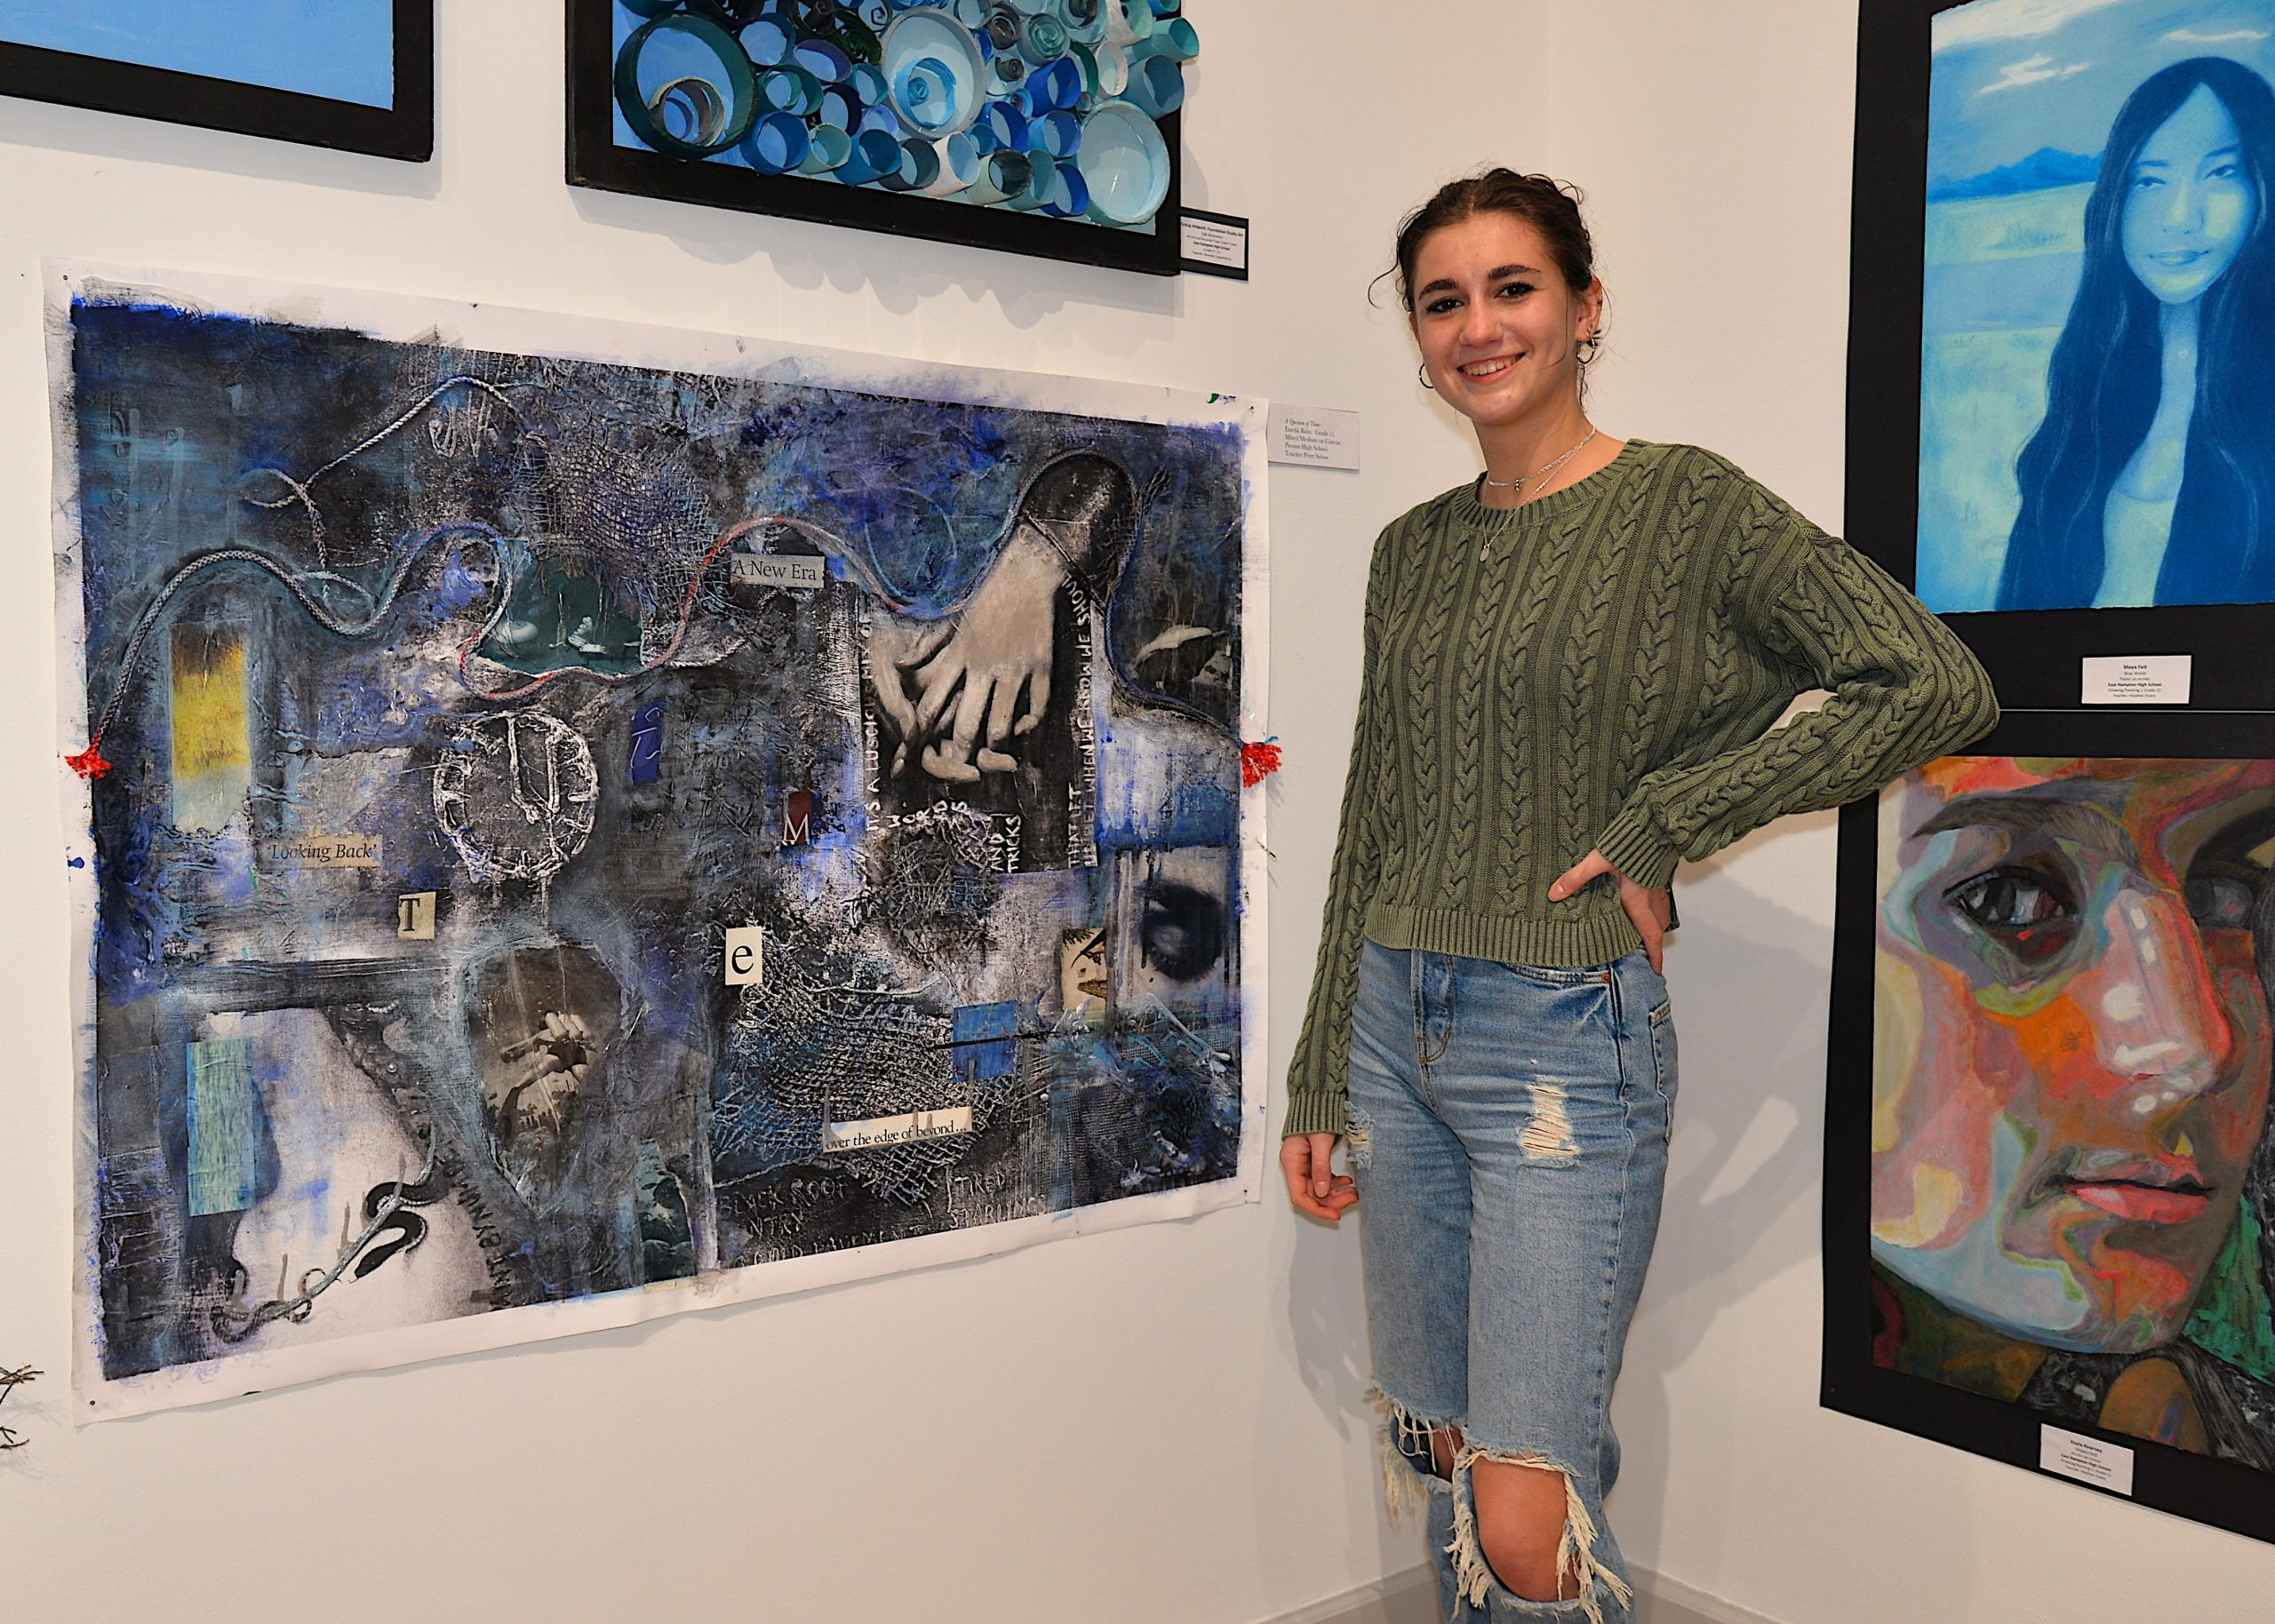 The Student Arts Festival opened at Guild Hall on Saturday with a reception. KYRIL BROMLEY